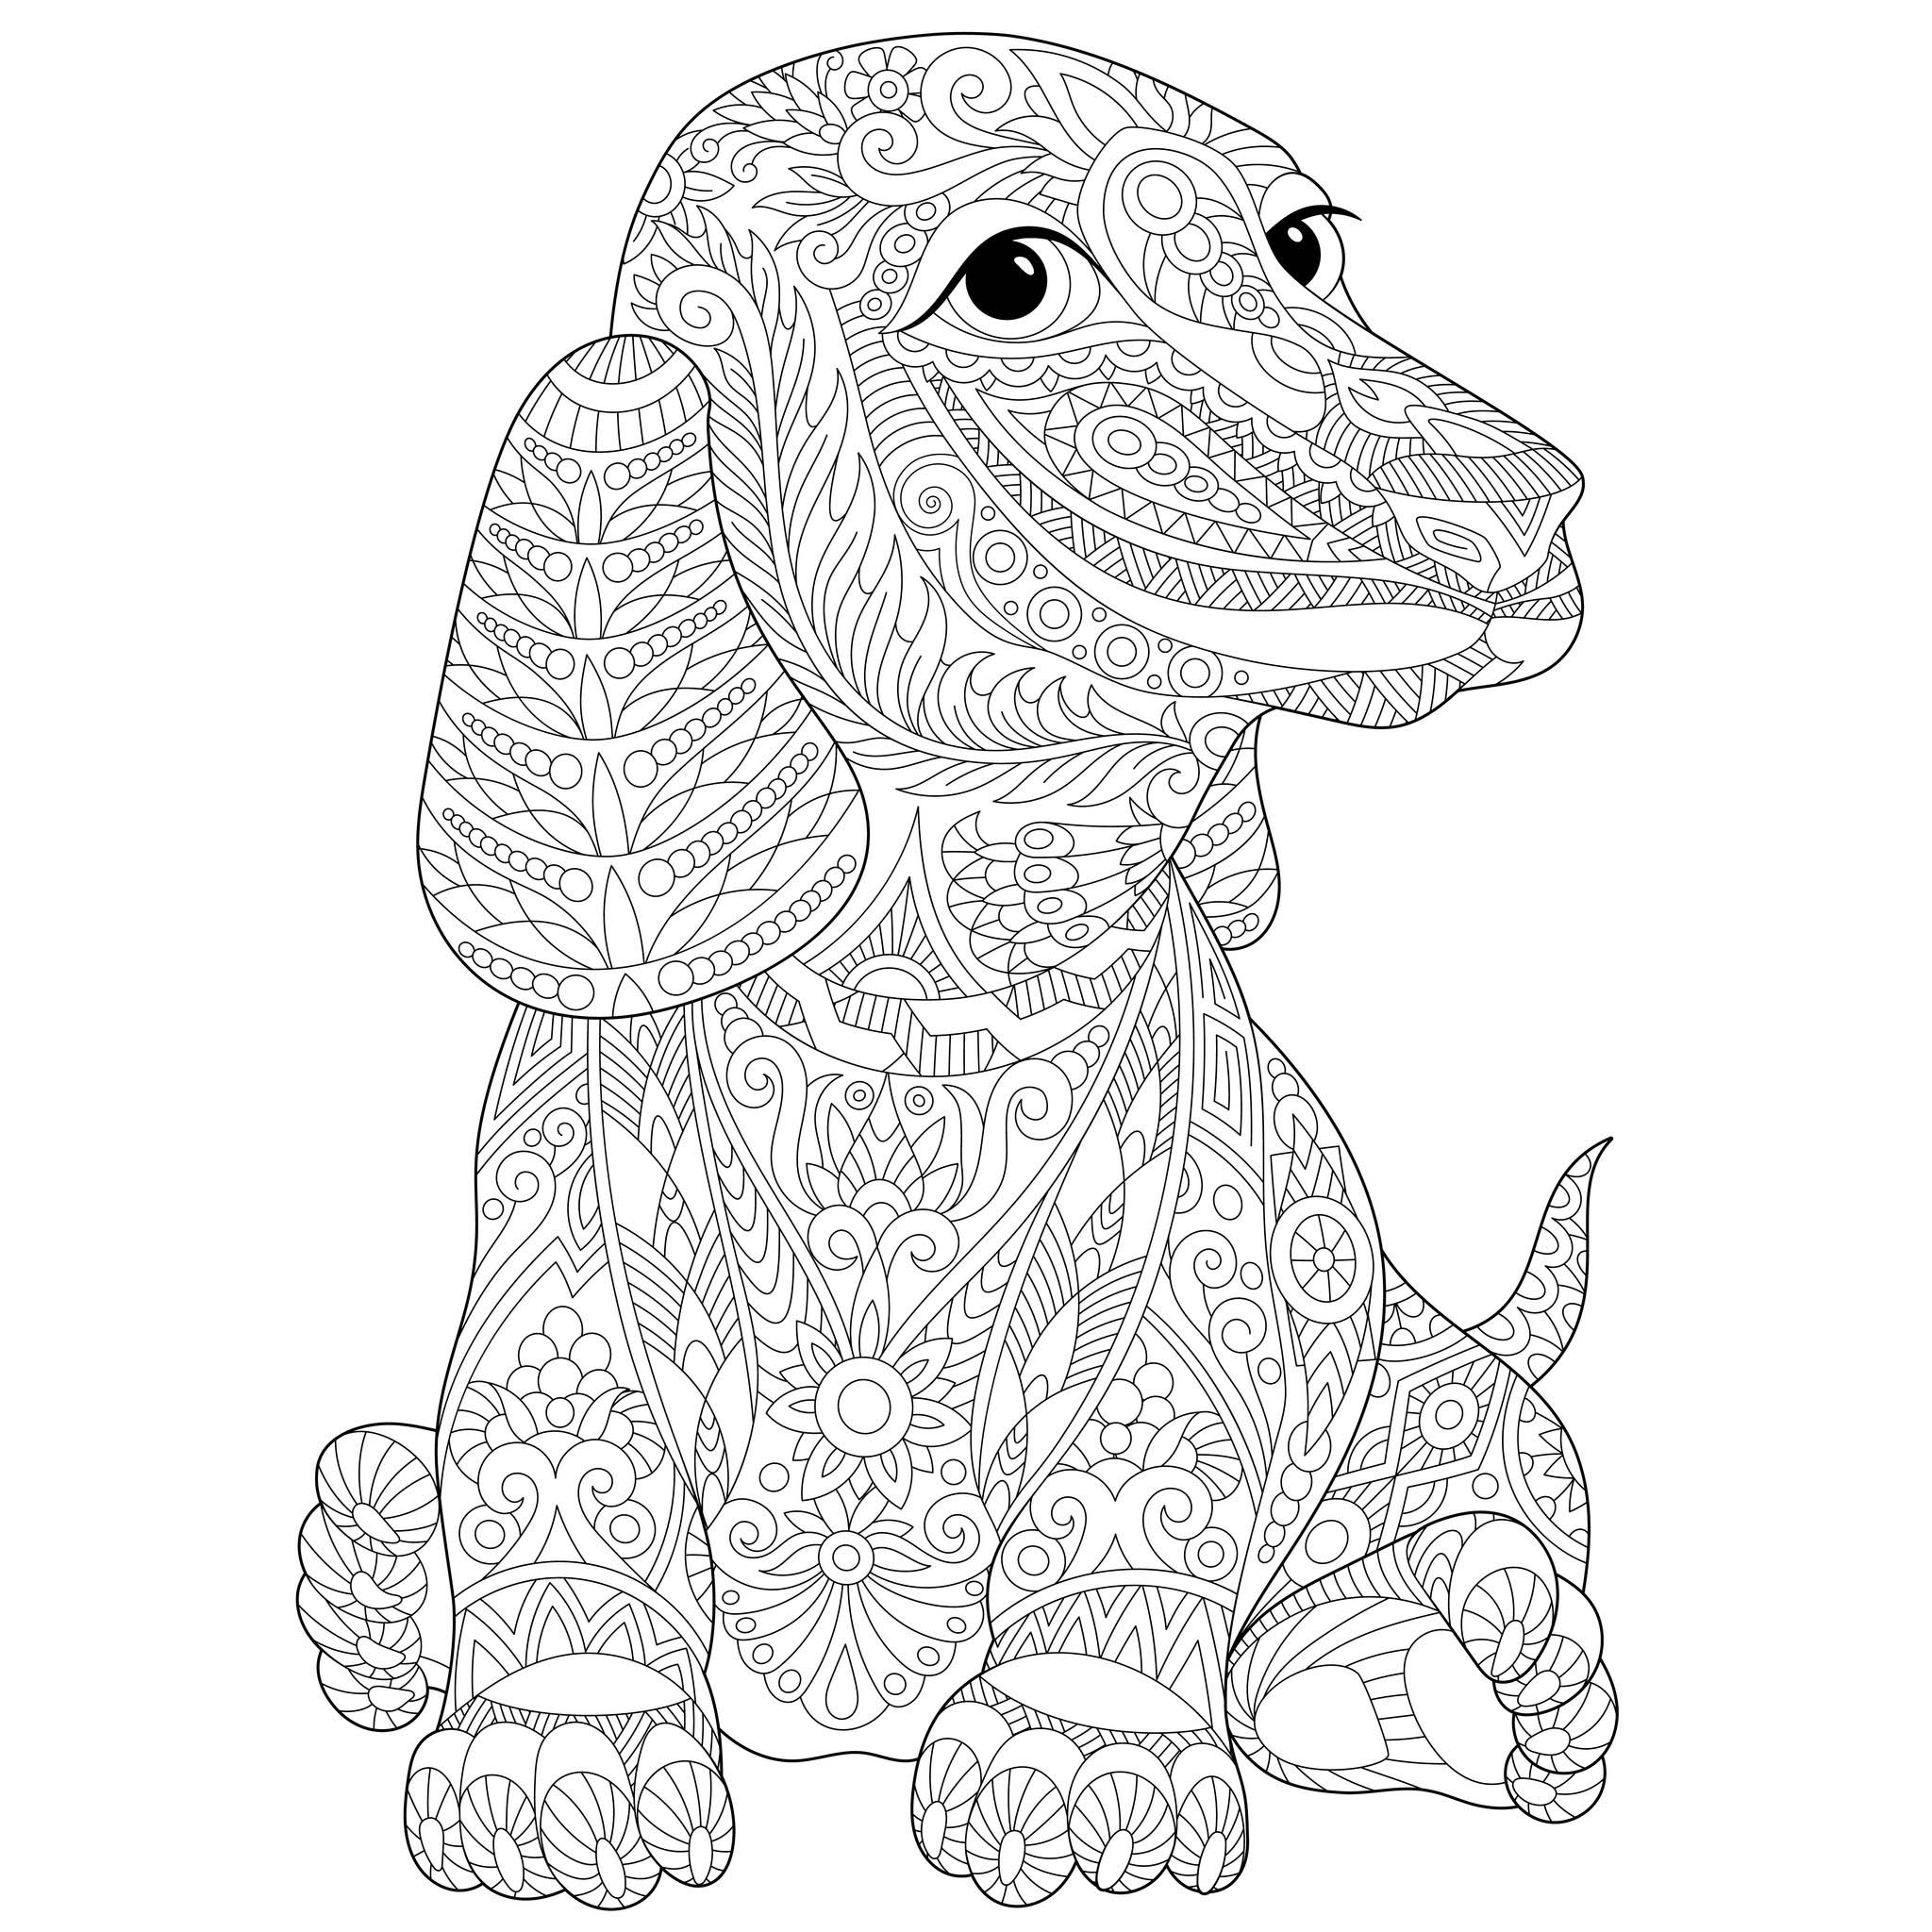 Dogs to color for kids - Dogs Kids Coloring Pages